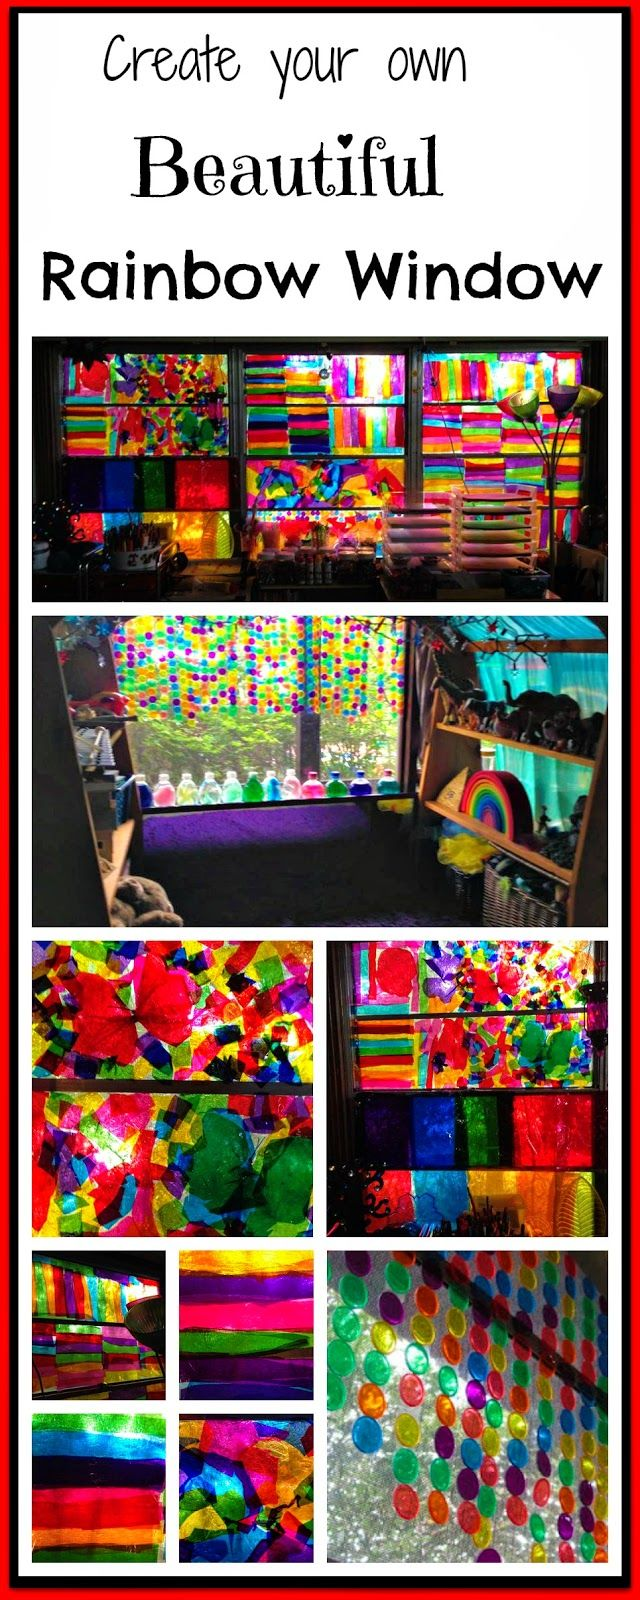 Create a Beautiful Rainbow Window... so many possibilities and love the ideas with different textures and color shifting displays